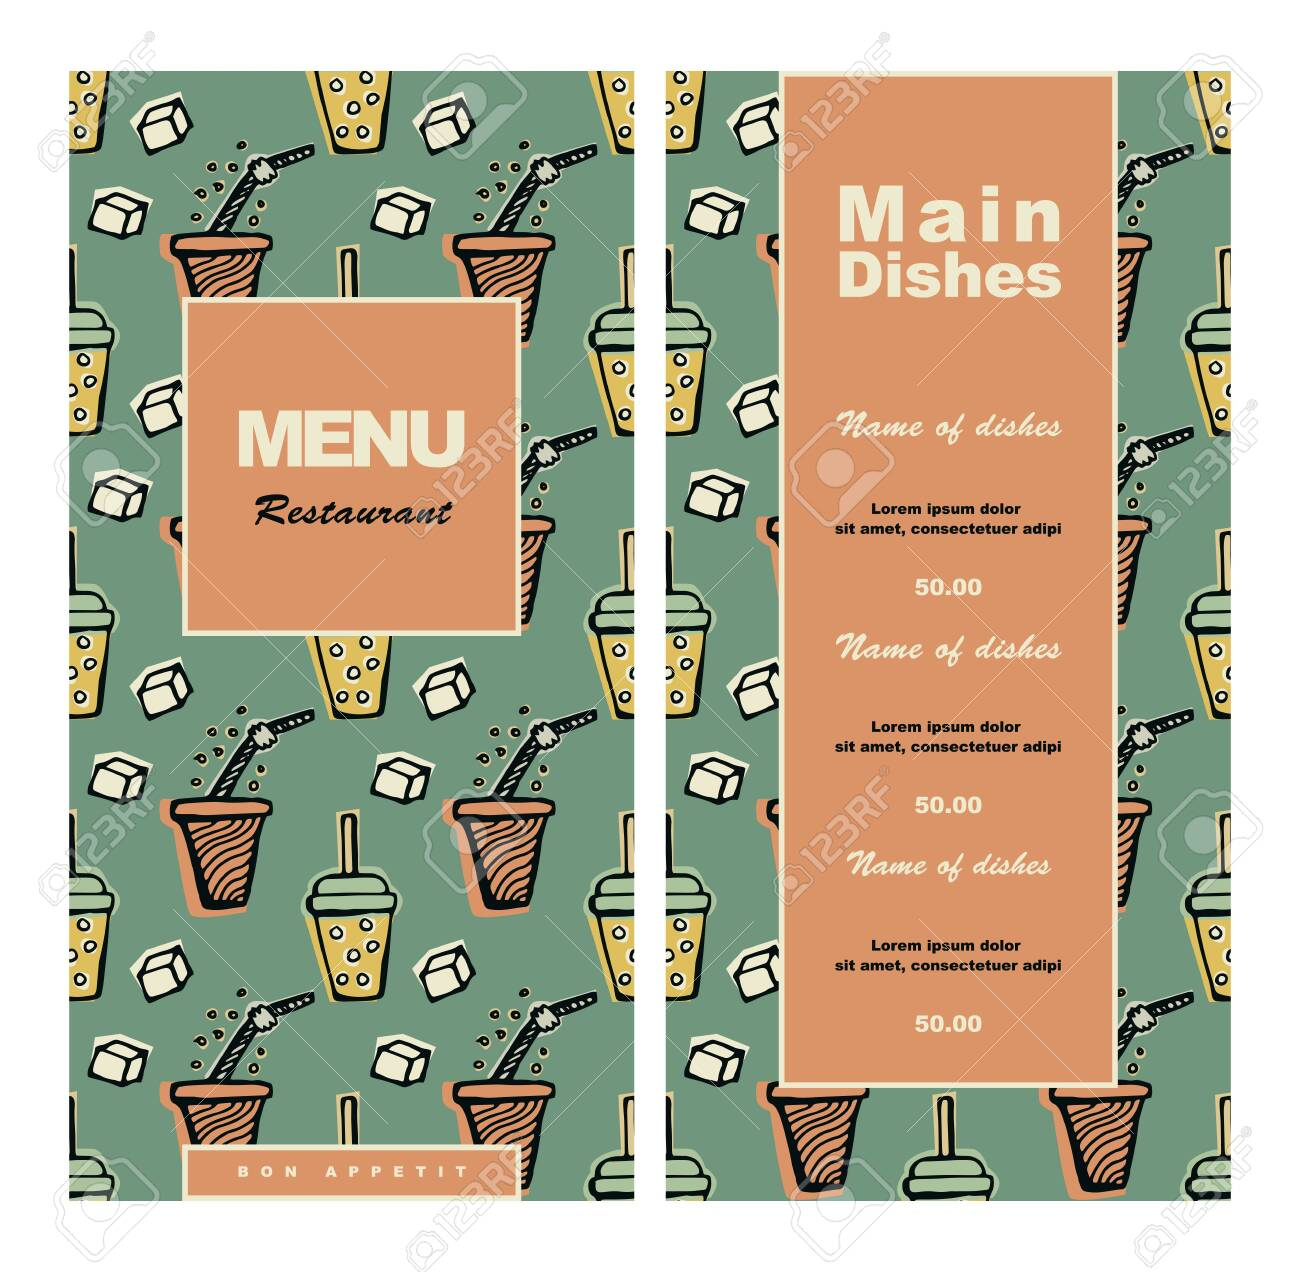 Menu Design For Cafe Coffee Shop Bistro Restaurant Hand Drawn Royalty Free Cliparts Vectors And Stock Illustration Image 128945817